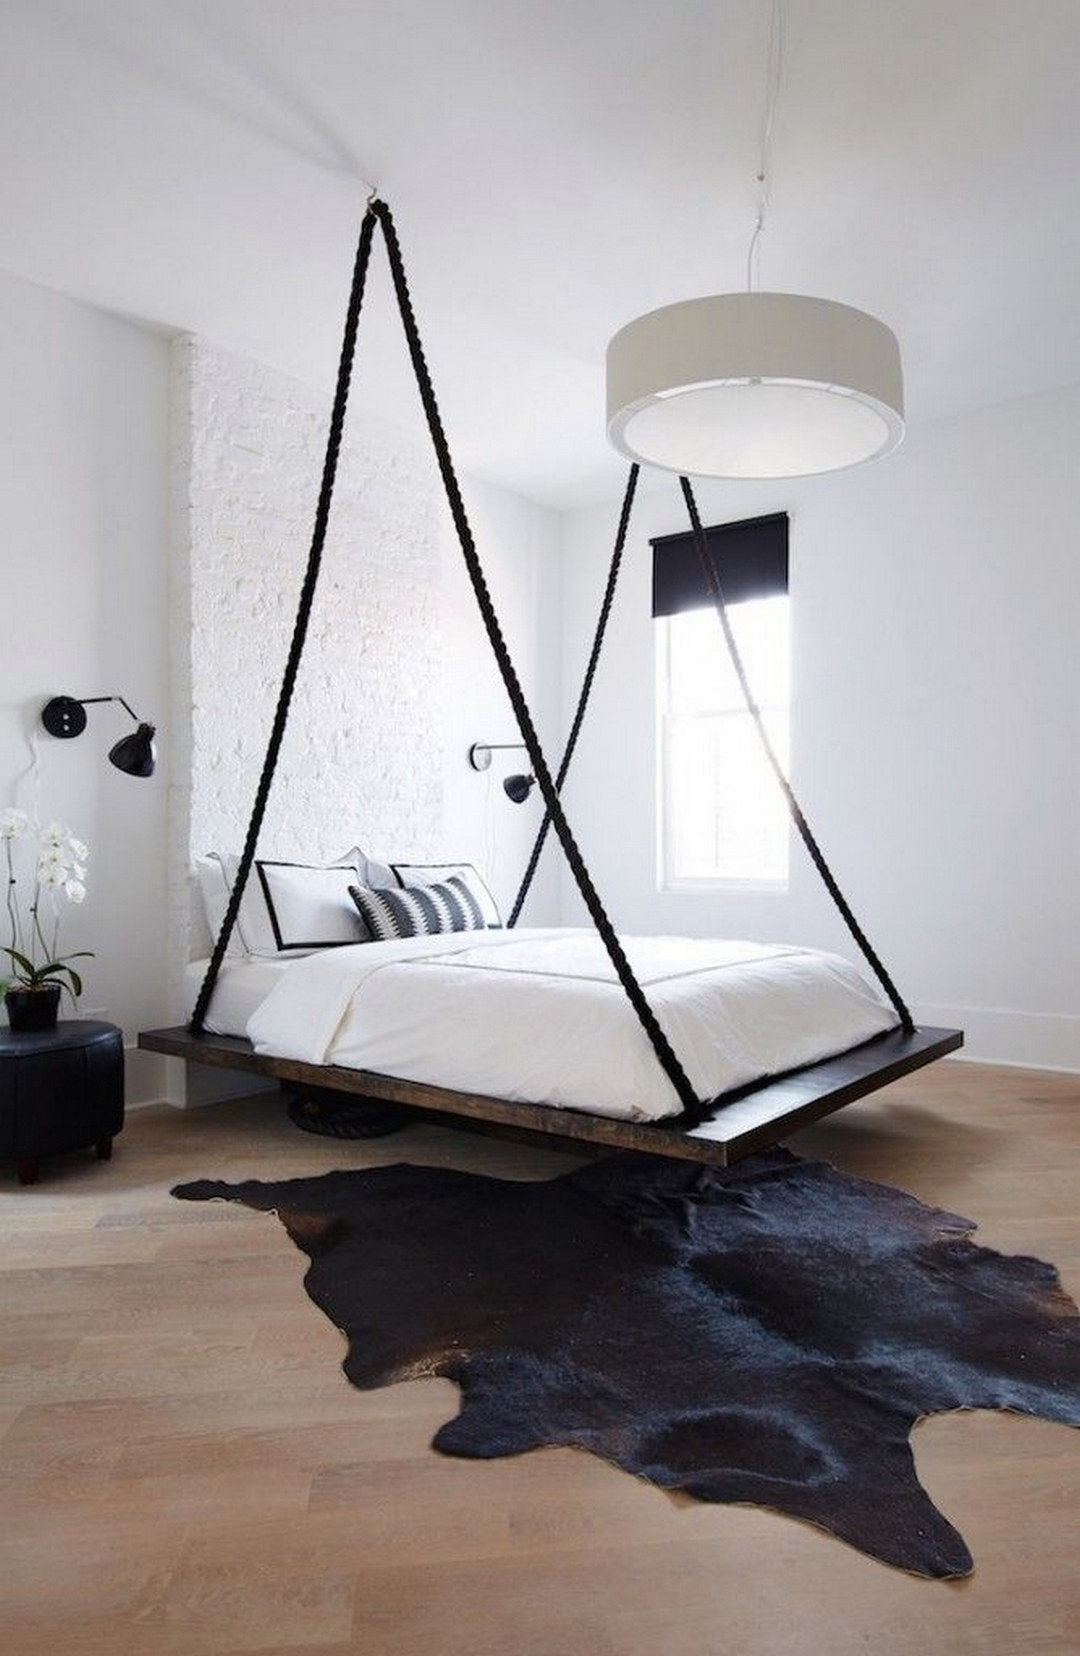 Interior Tips How To Introduce Grey Into The Bedroom In 2020 Minimalism Interior Hanging Beds Bed Design